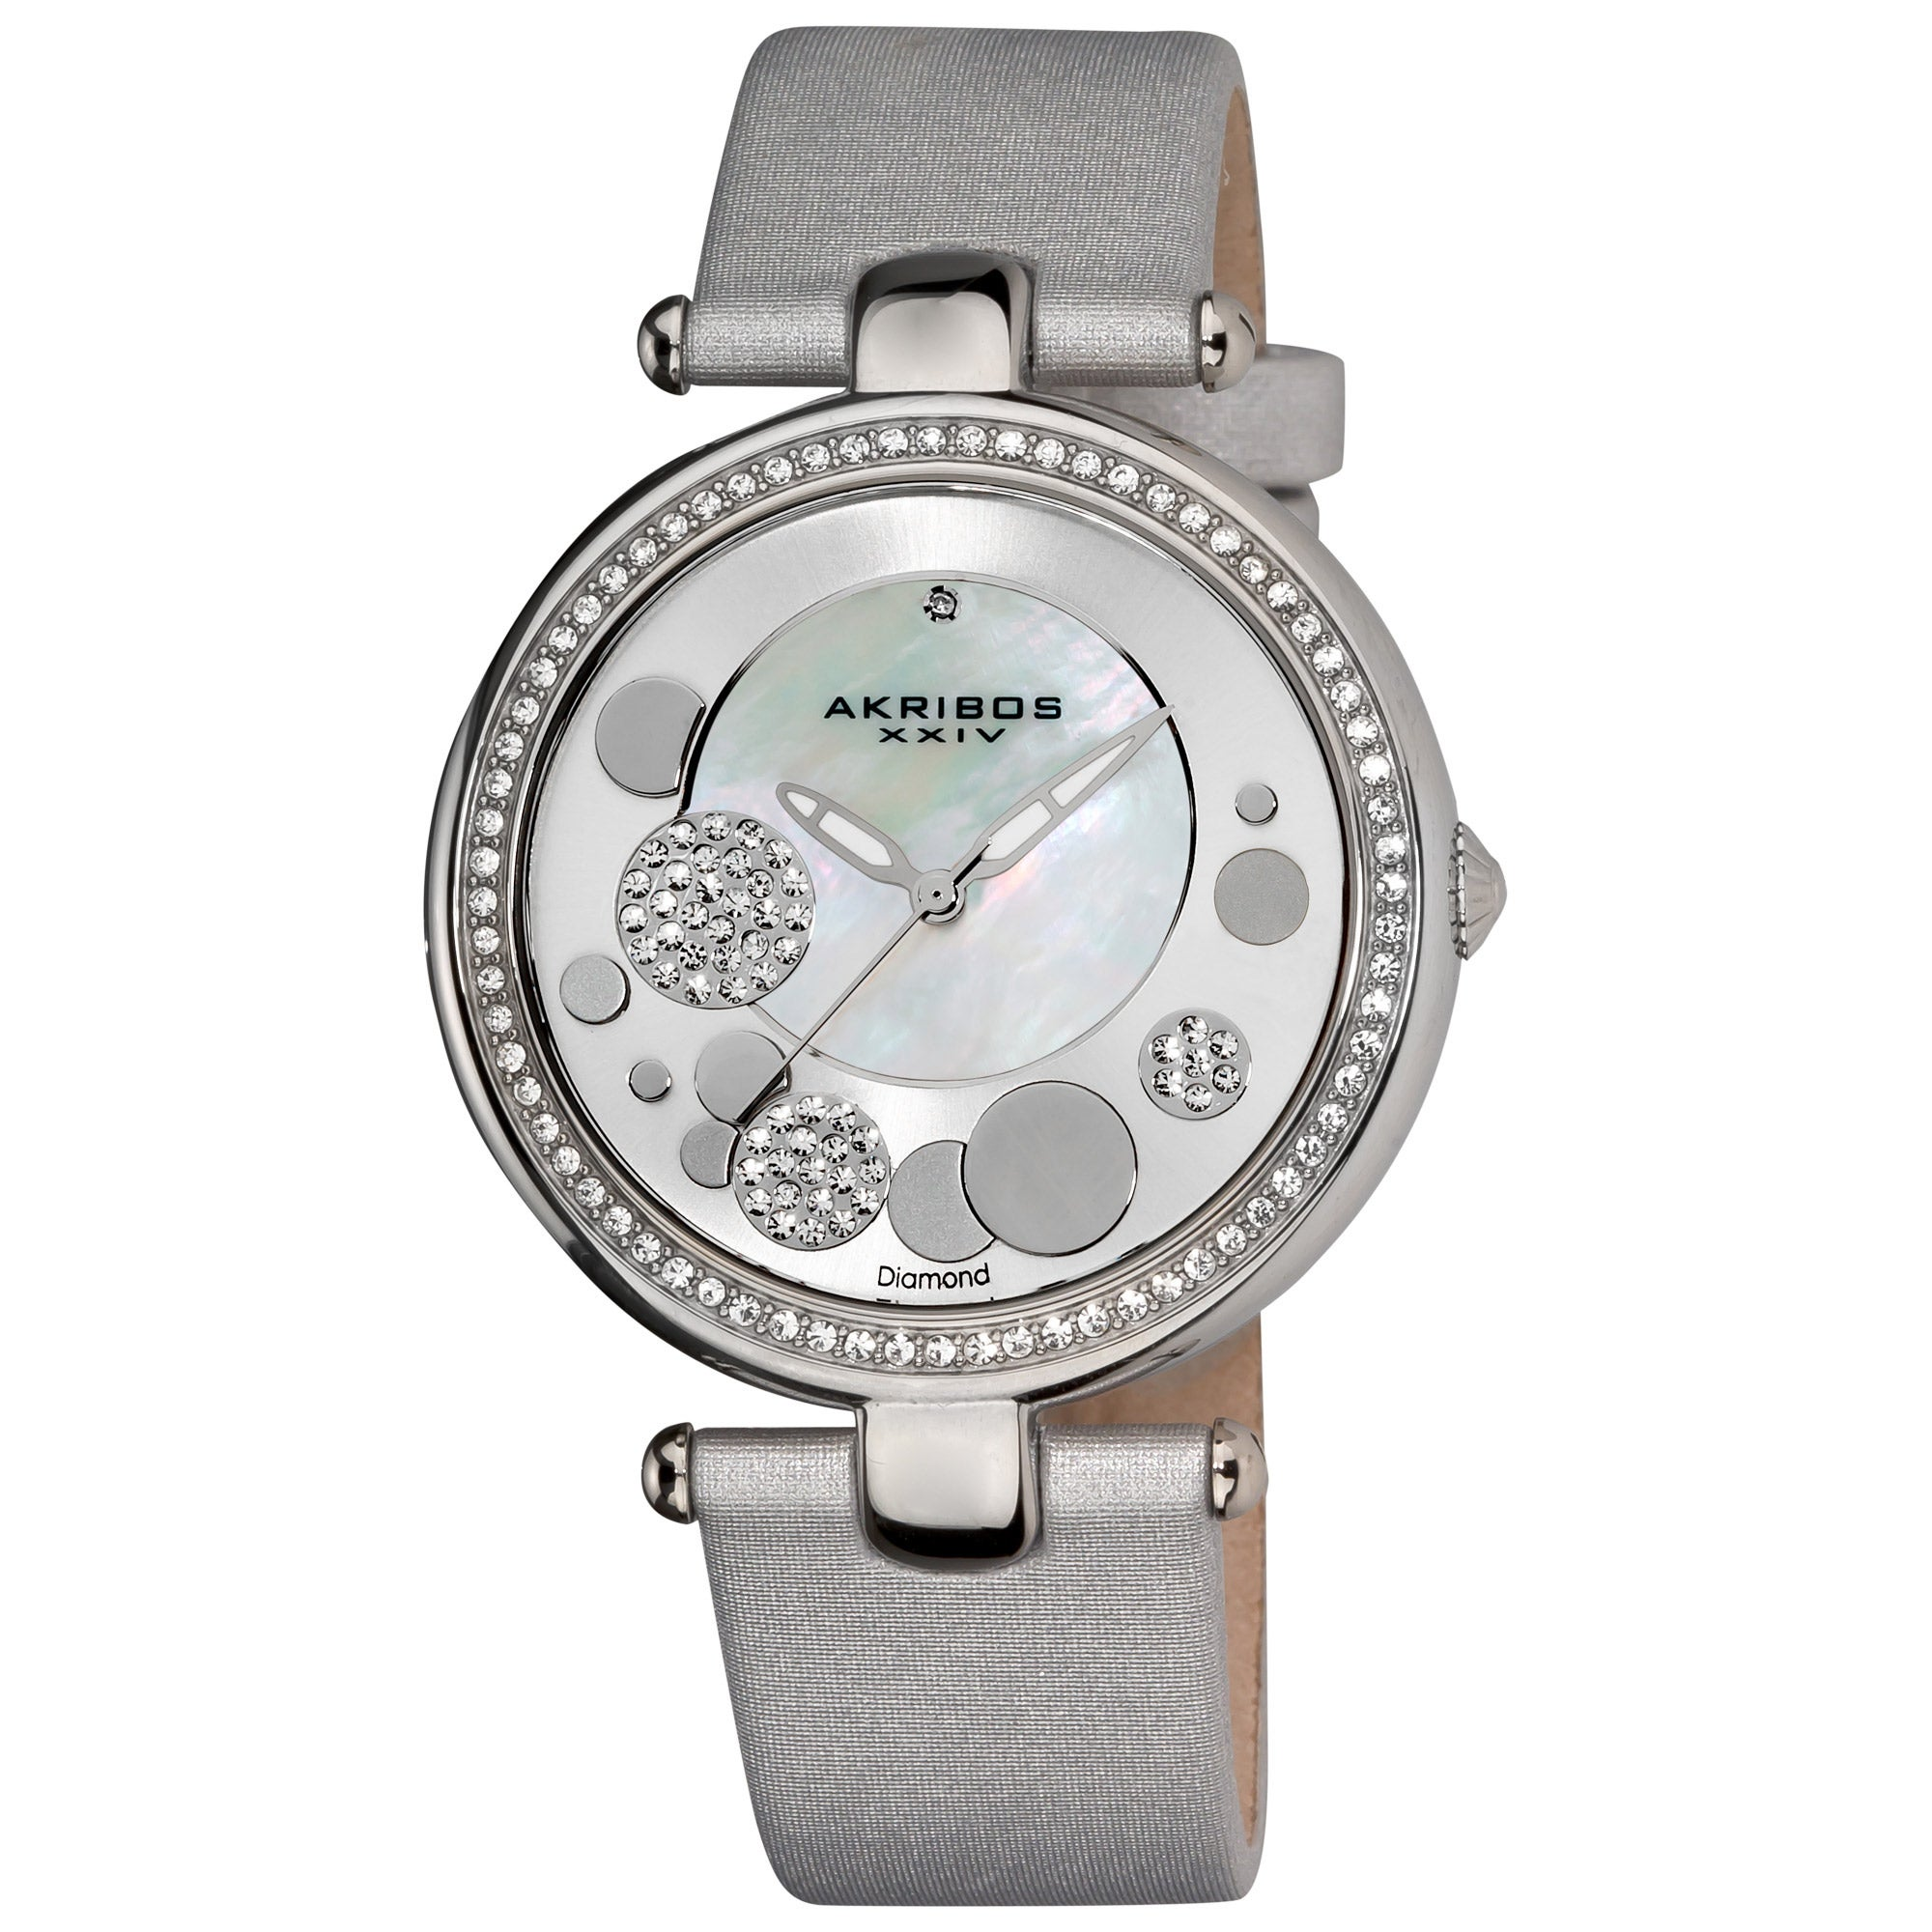 Eziba Collection Akribos XXIV Women's Silvertone Sunray/ Diamond Dial Quartz Strap Watch at Sears.com